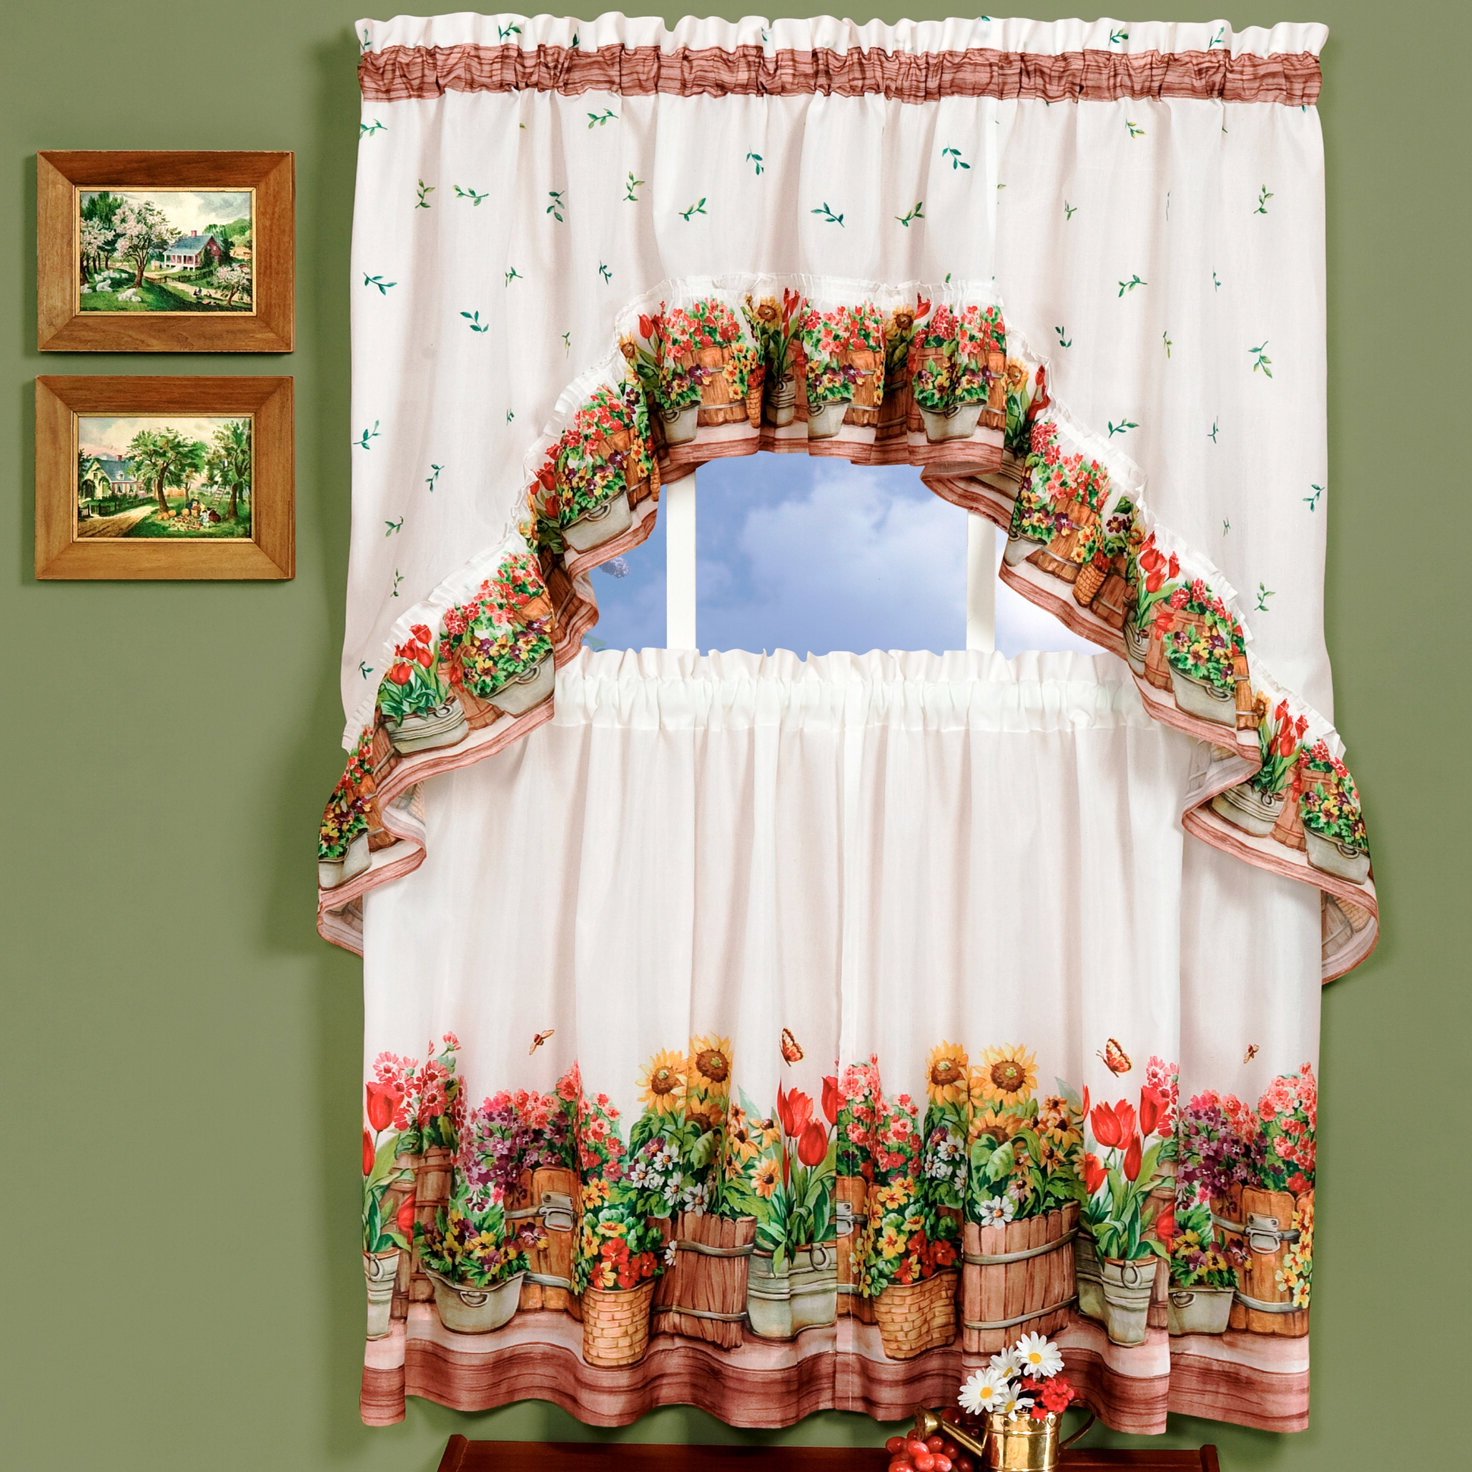 Fashionable Chateau Wines Cottage Kitchen Curtain Tier And Valance Sets Pertaining To Country Garden Valance And Tier Set (Gallery 4 of 20)